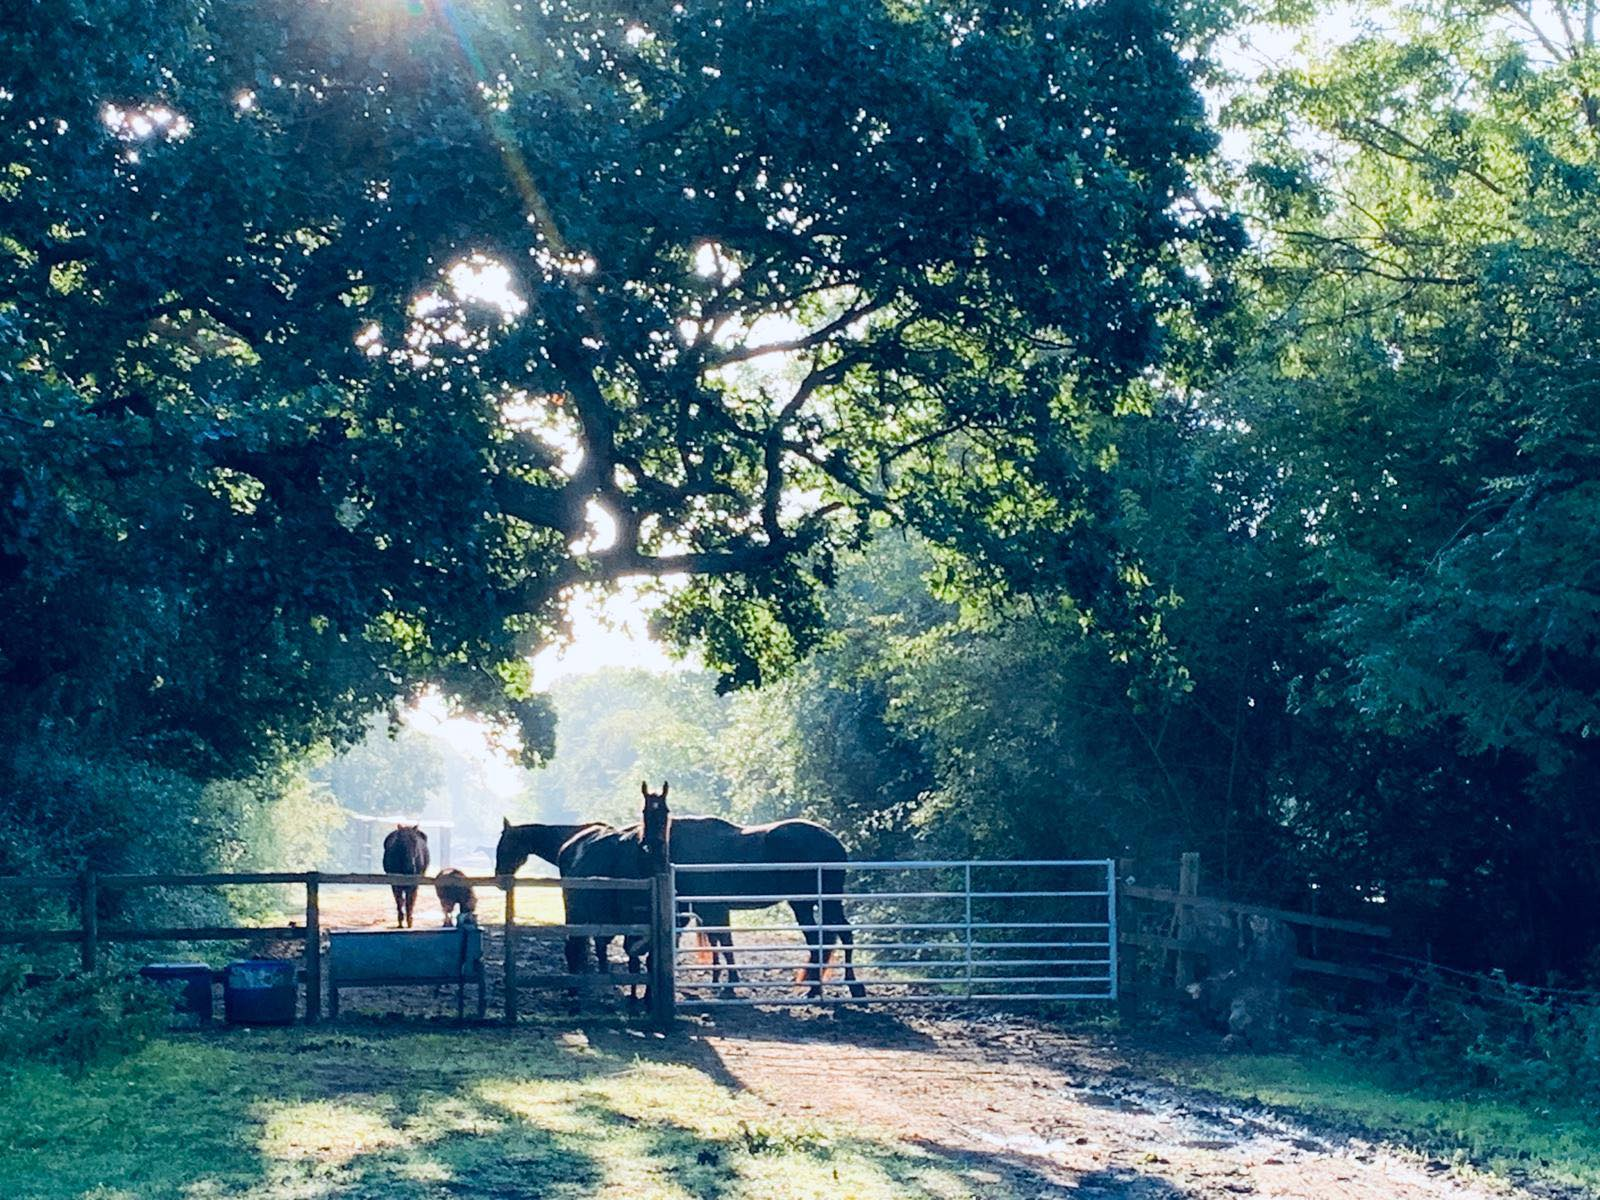 Equine Therapy - Using Horses to Aid Human Physical and Mental Health